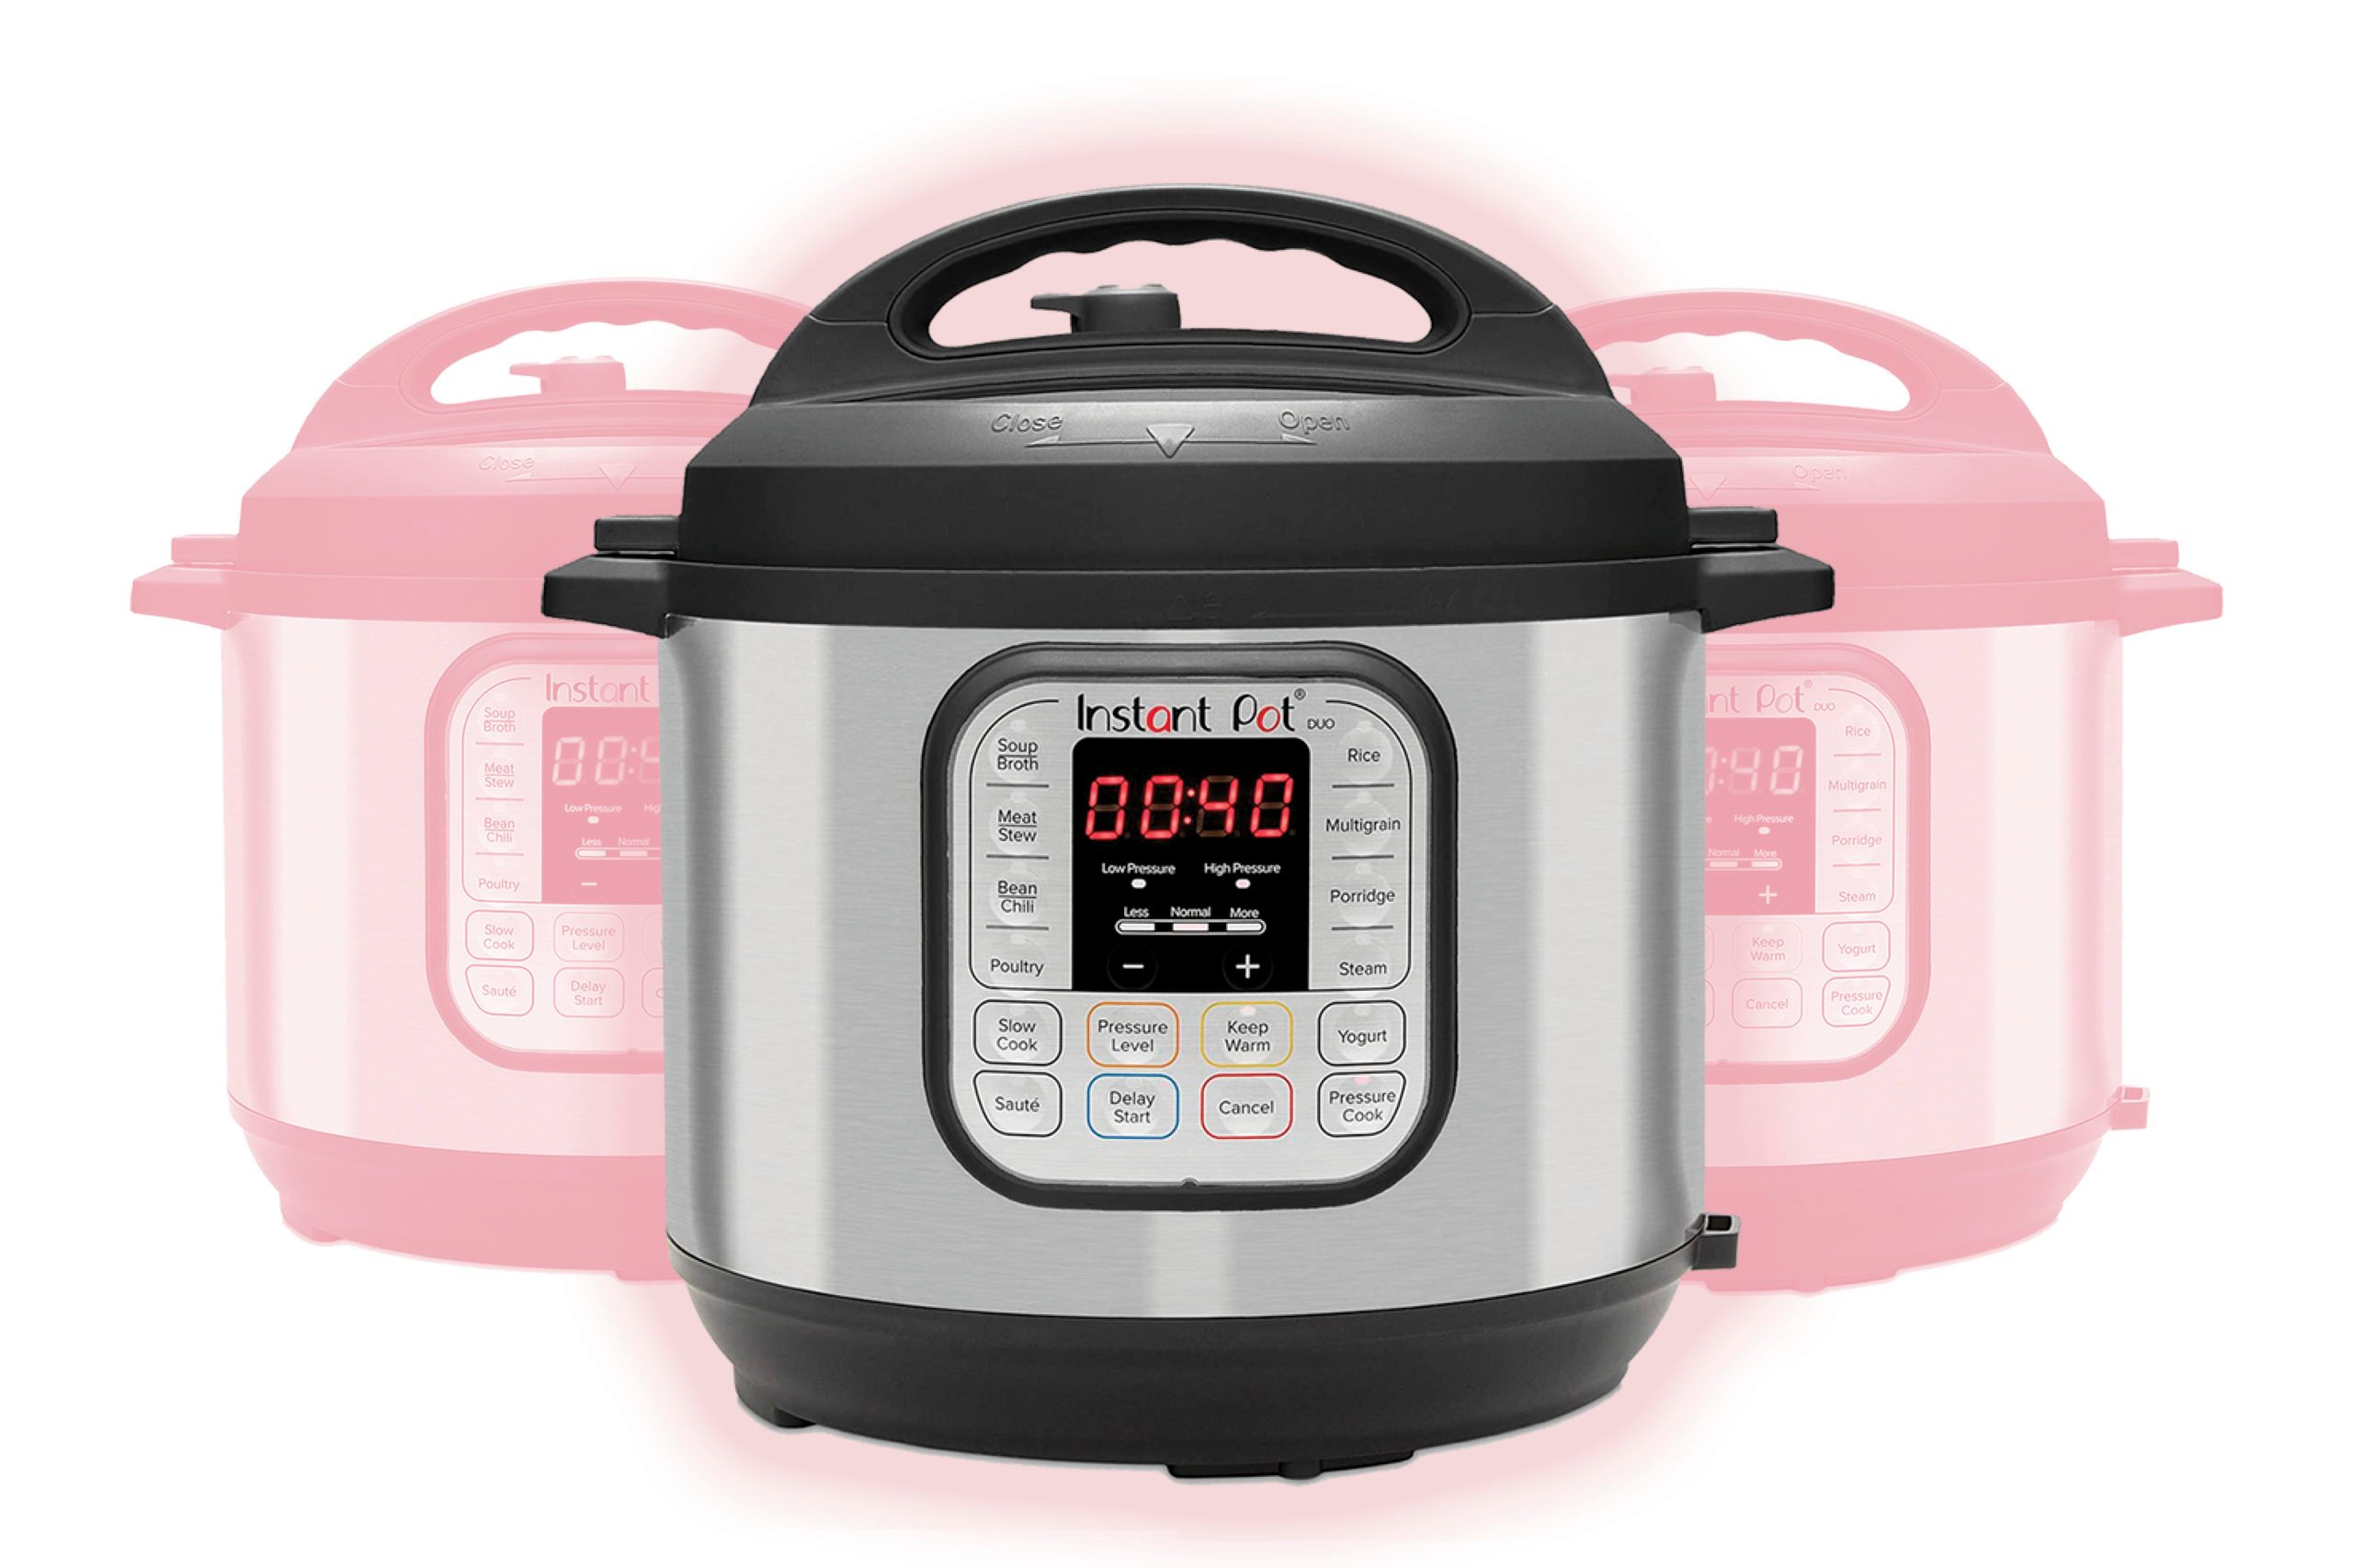 Instant Pot Duo 7-in-1 Electric Pressure Cooker, Sterilizer, Slow Cooker, Rice Cooker, Steamer, Saute, Yogurt Maker, and Warmer, 6 Quart, 14 One-Touch Programs TKP